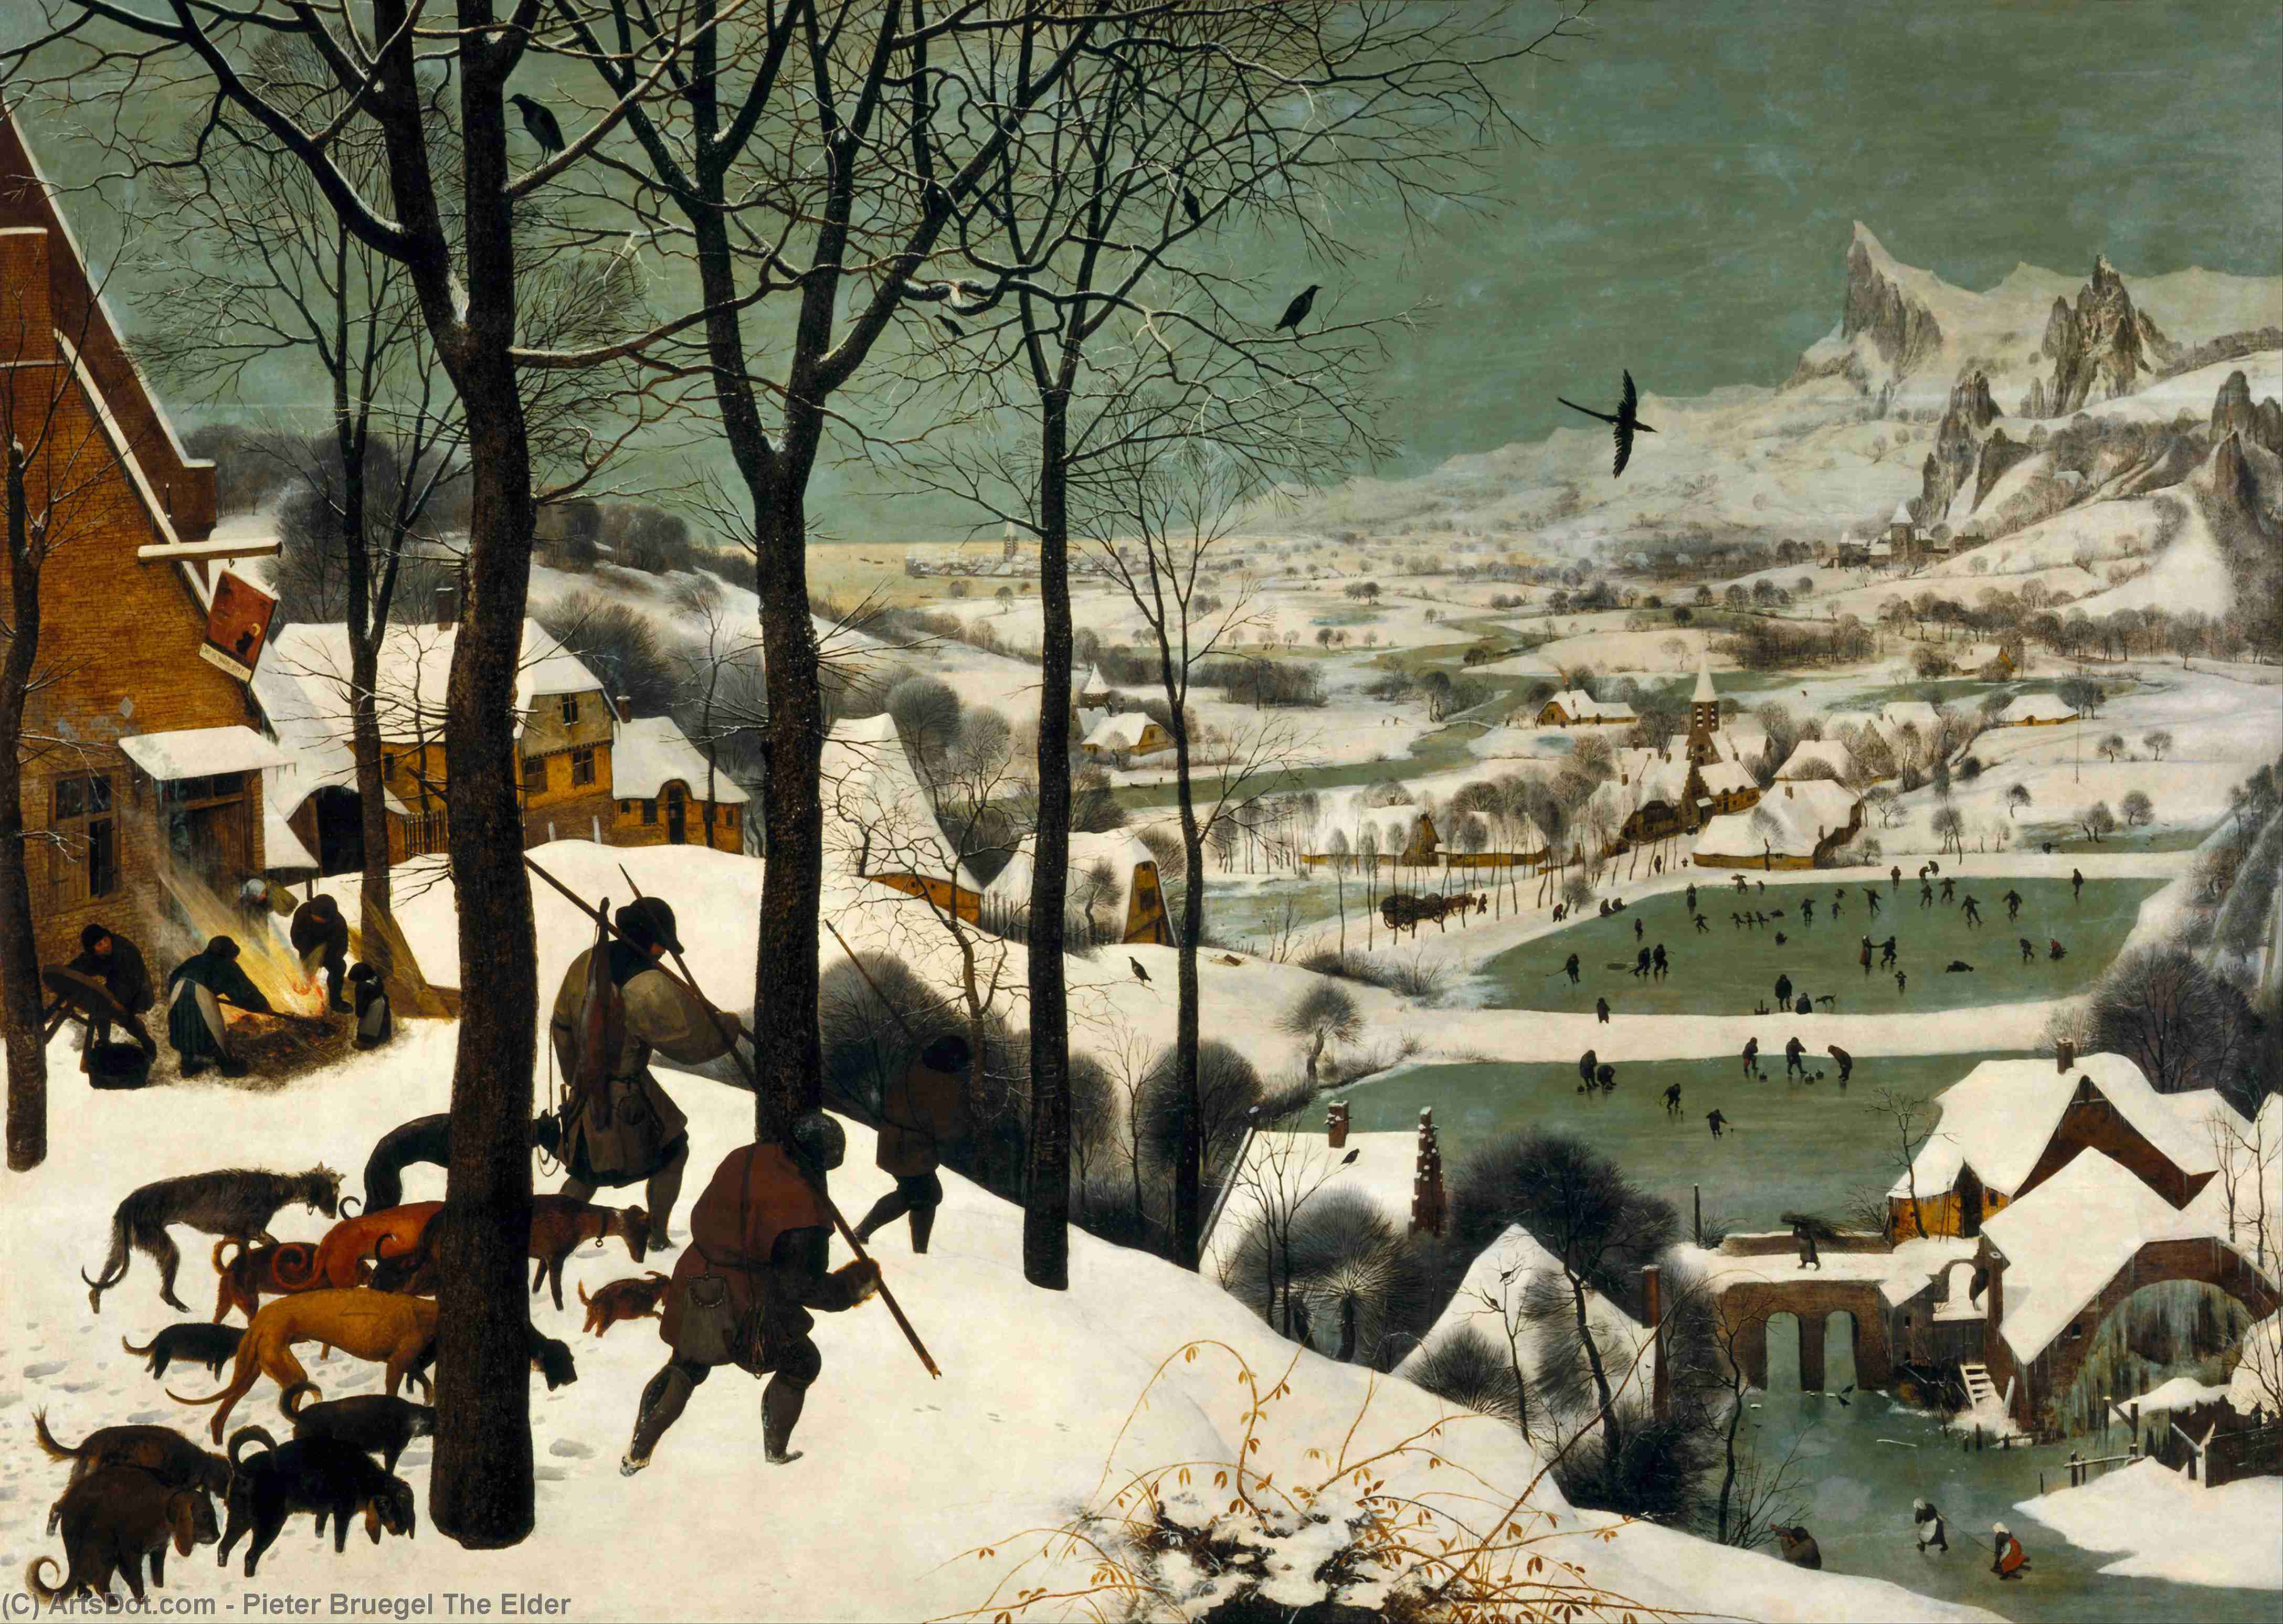 Wikioo.org - The Encyclopedia of Fine Arts - Painting, Artwork by Pieter Bruegel The Elder - The Hunters in the Snow (Winter)